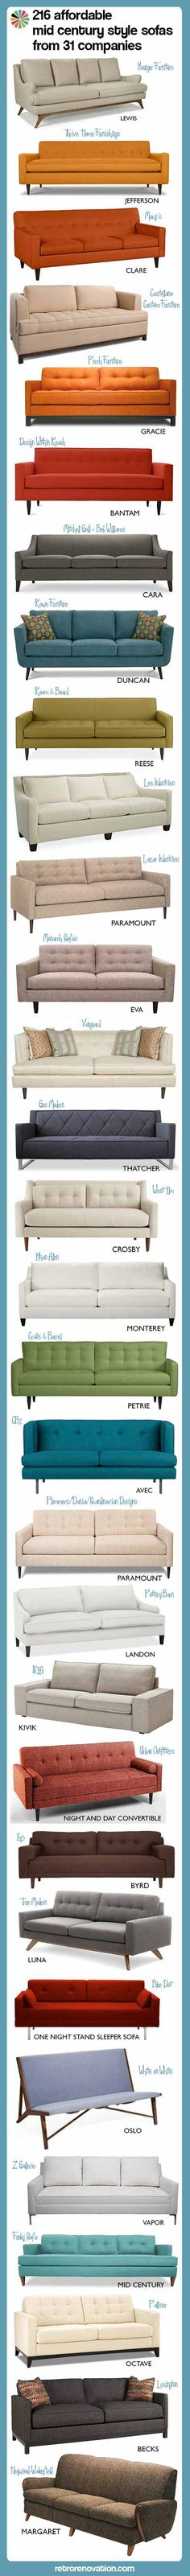 Modern couch ideas 216 affordable mid century modern style sofas -- from 31 companies - Retro Renovation Mid Century Modern Couch, Mid Century Sofa, Mid Century Decor, Mid Century House, Mid Century Modern Design, Mid Century Modern Furniture, Retro Furniture, Futuristic Furniture, Plywood Furniture